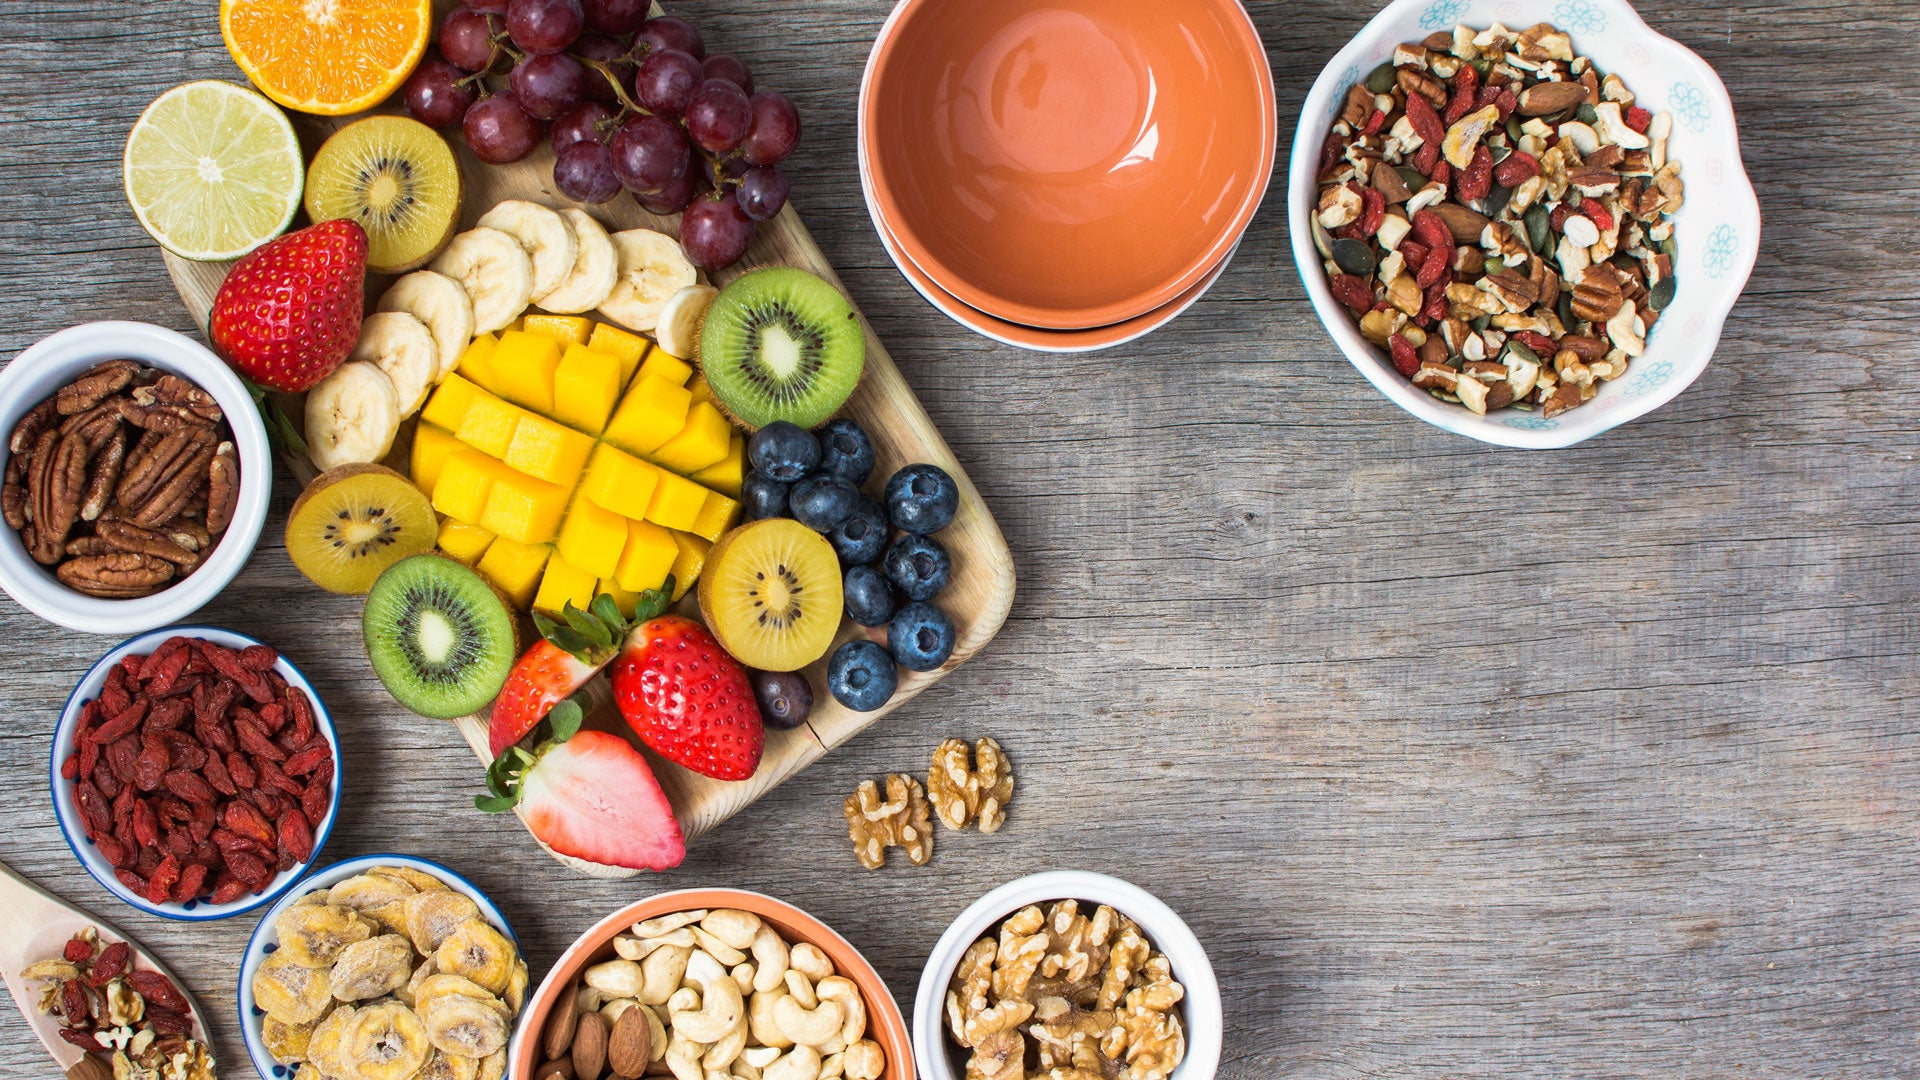 Is Paleo right for me?